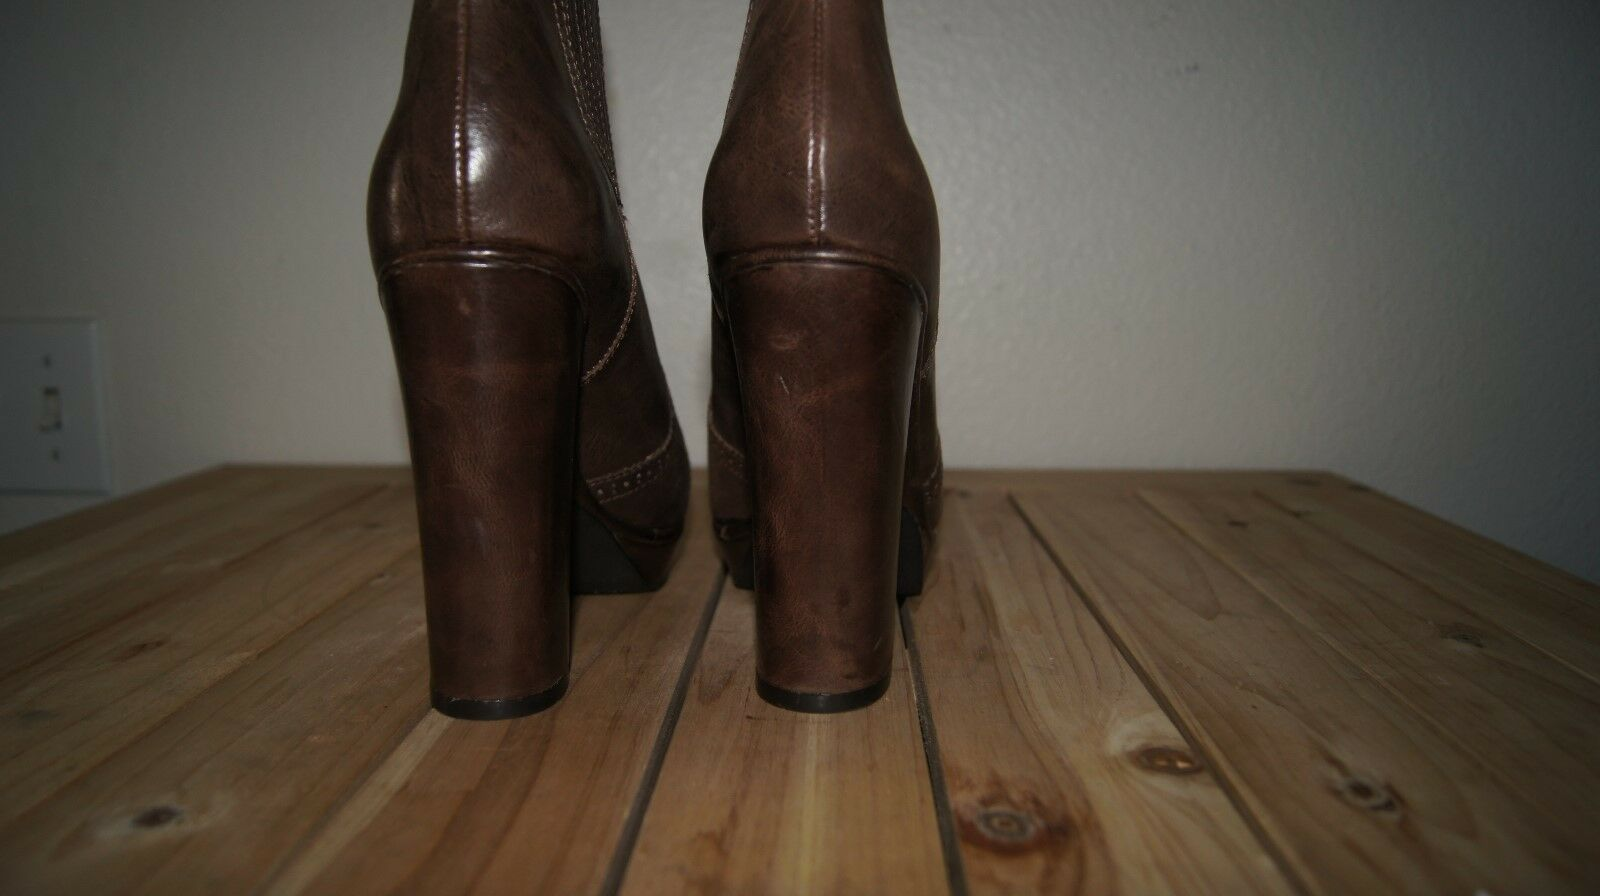 Anthropologie Trouve BOOTS 8.5 HIGH HIGH HIGH HEEL BOOTS 8.5 ANTHROPOLOGIE BOOTS 8.5 39c1d2